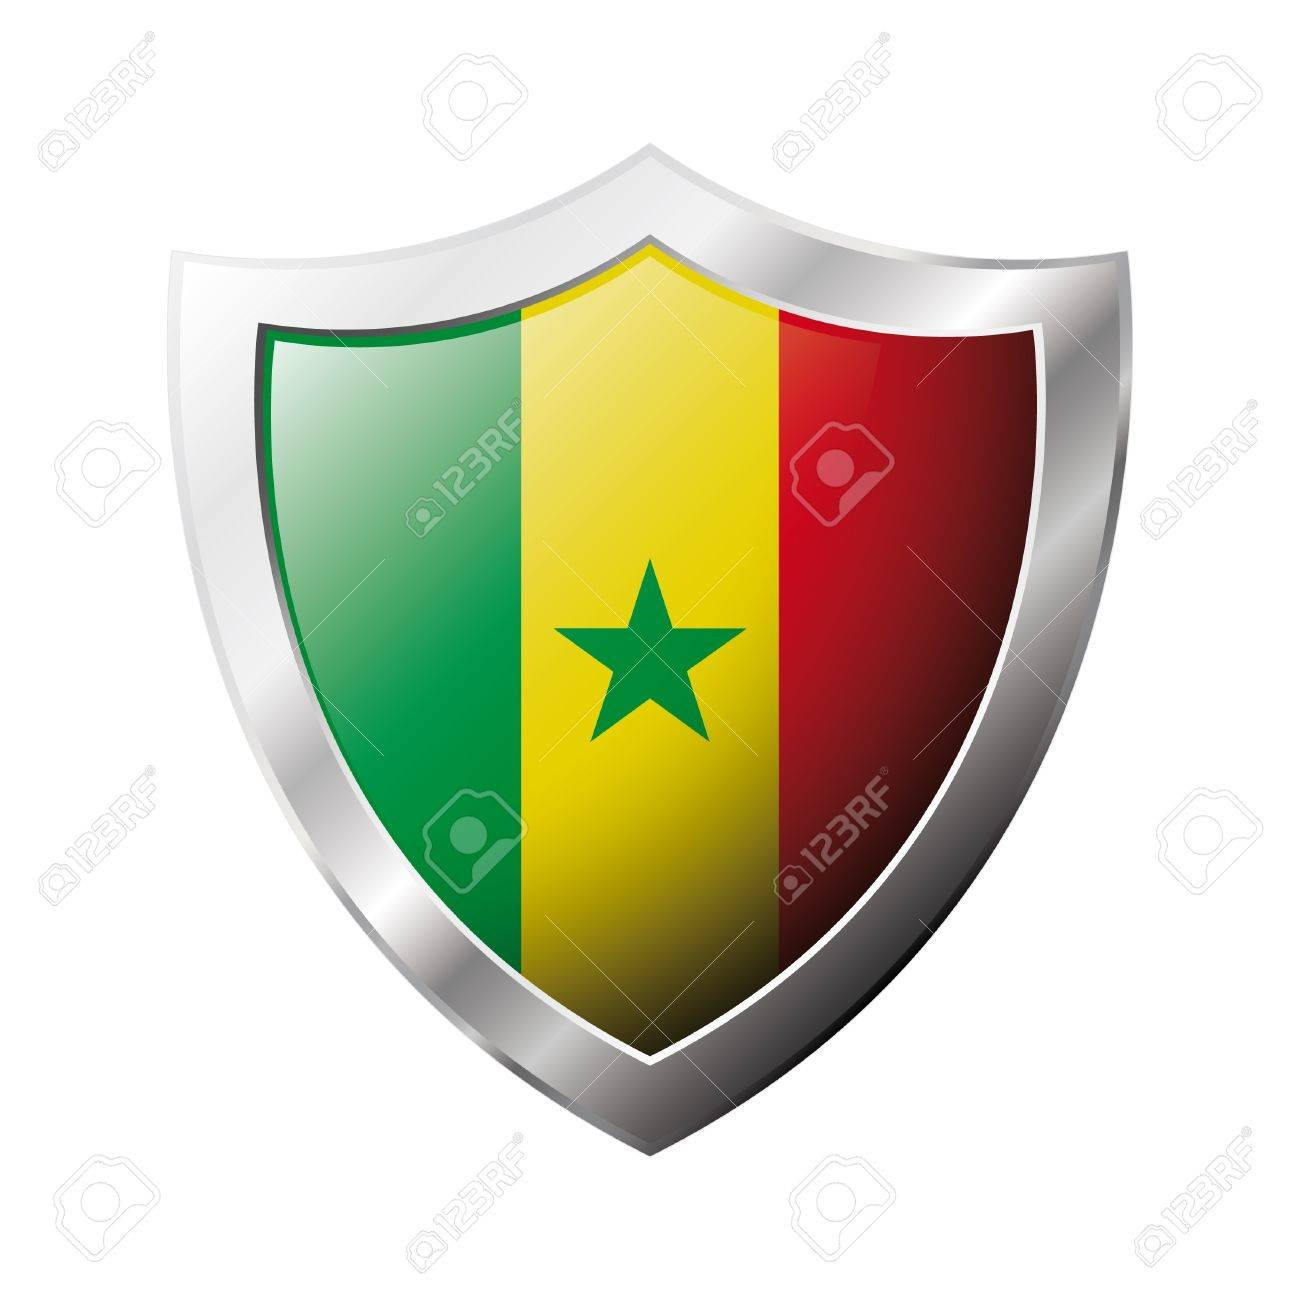 Senegal flag on metal shiny shield  illustration. Collection of flags on shield against white background. Abstract isolated object. Stock Illustration - 6945719